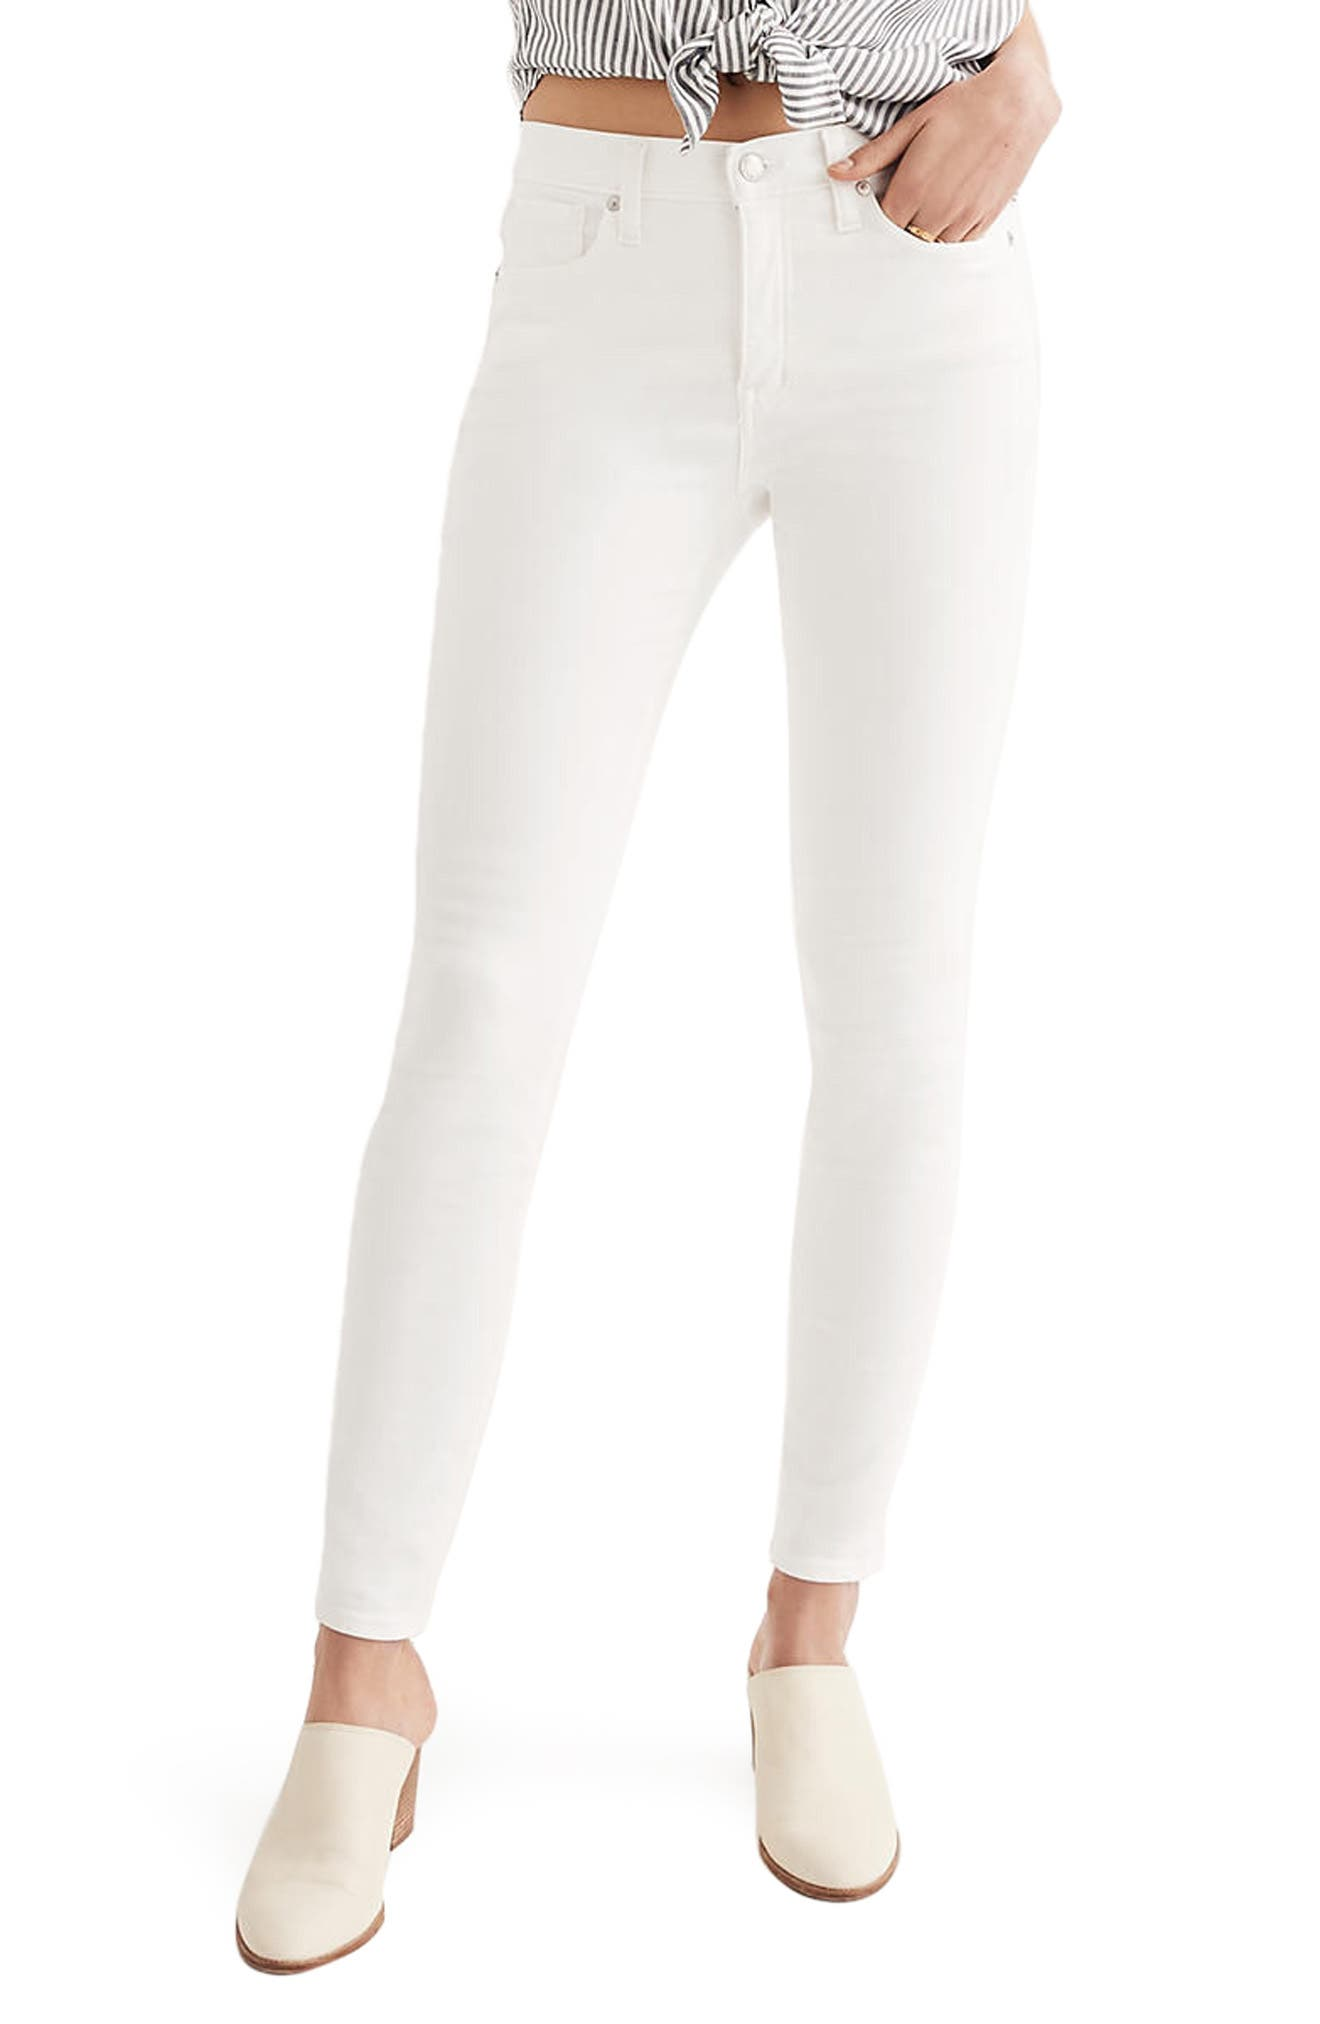 9-Inch High Waist Skinny Jeans,                             Main thumbnail 1, color,                             Pure White